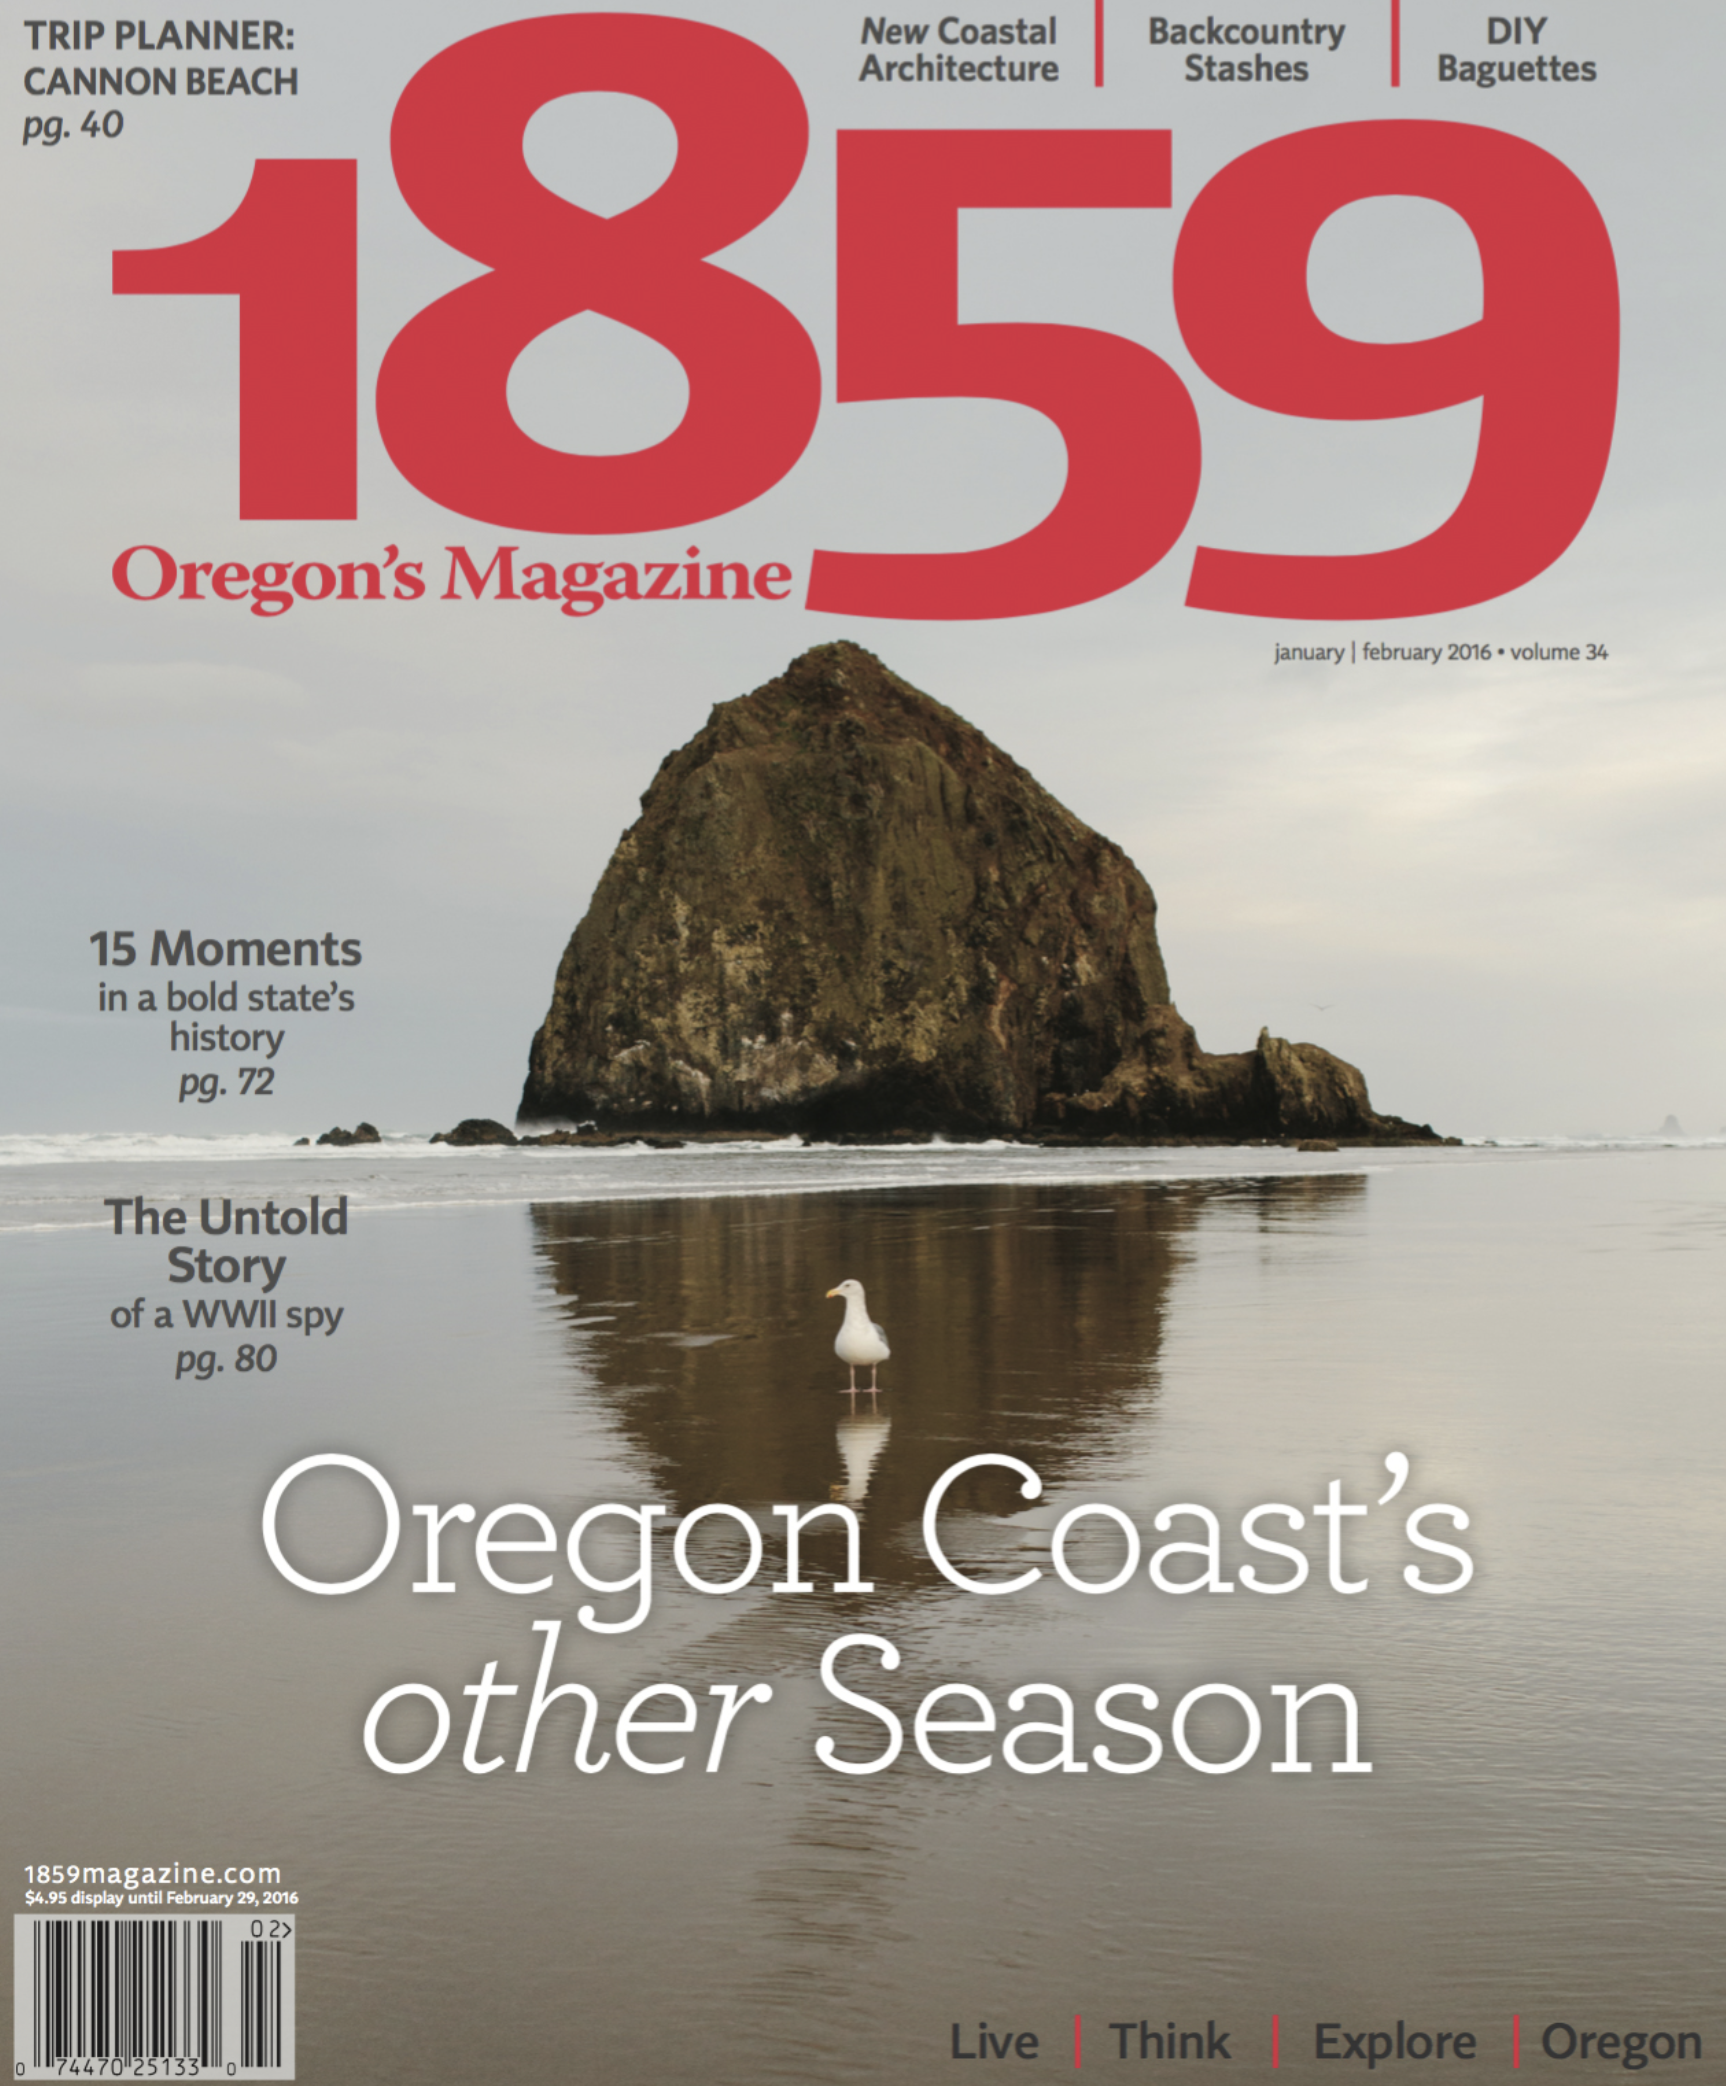 1859-oregon-magazine-cover-cameron-zegers-travel-photographer.png